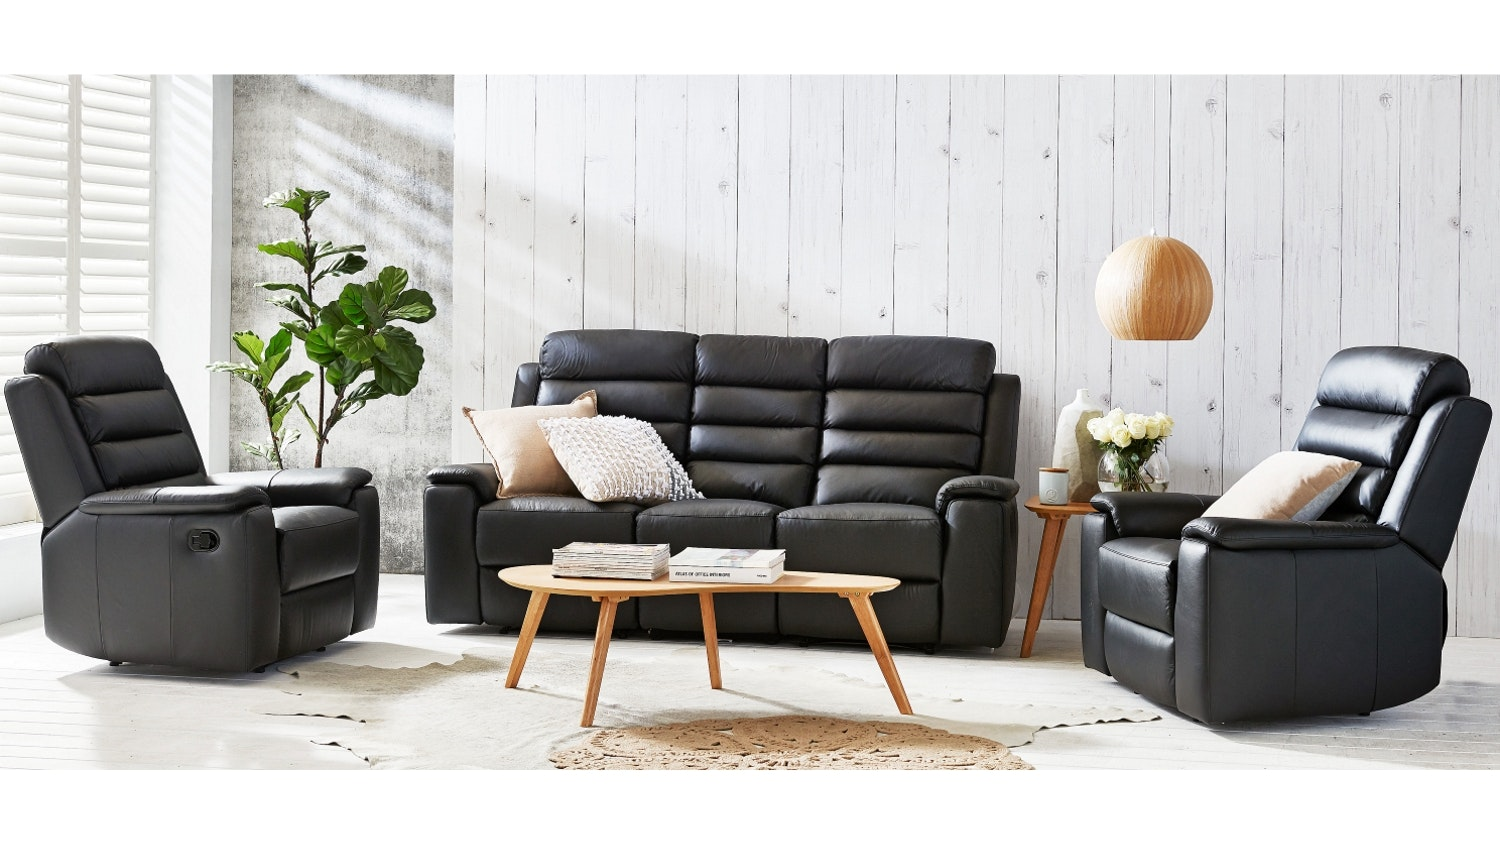 Apolo 3 Piece Leather Recliner Lounge Suite - Black